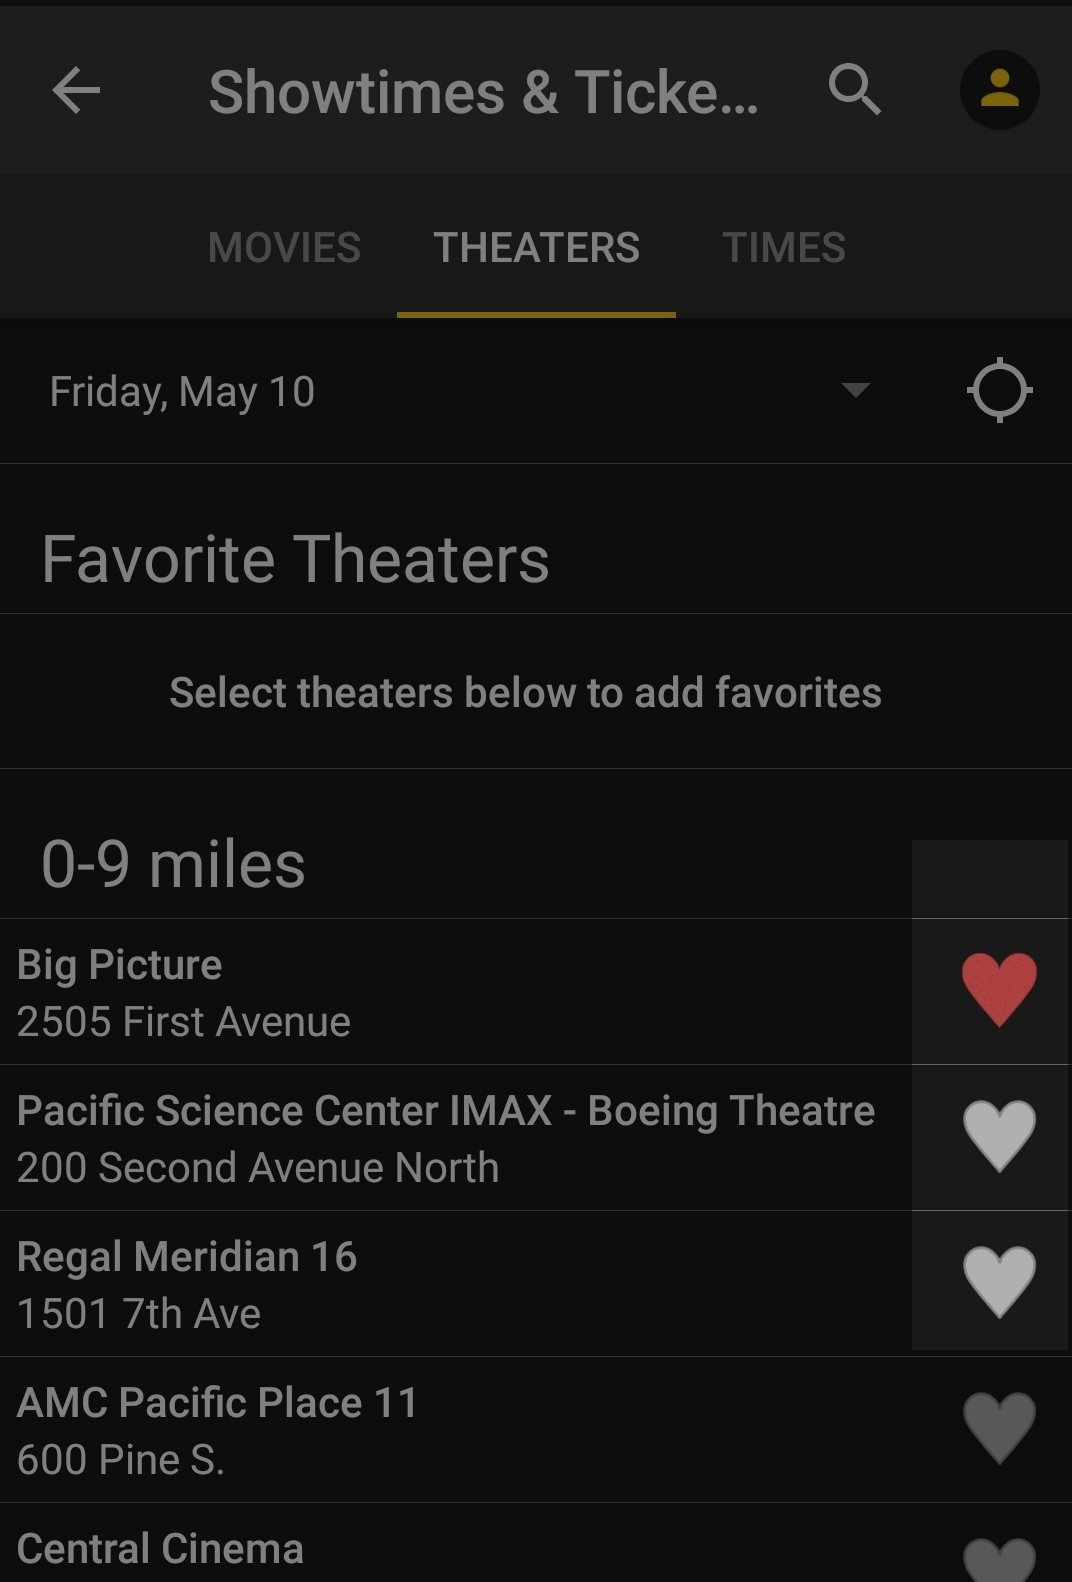 Example of Showtimes